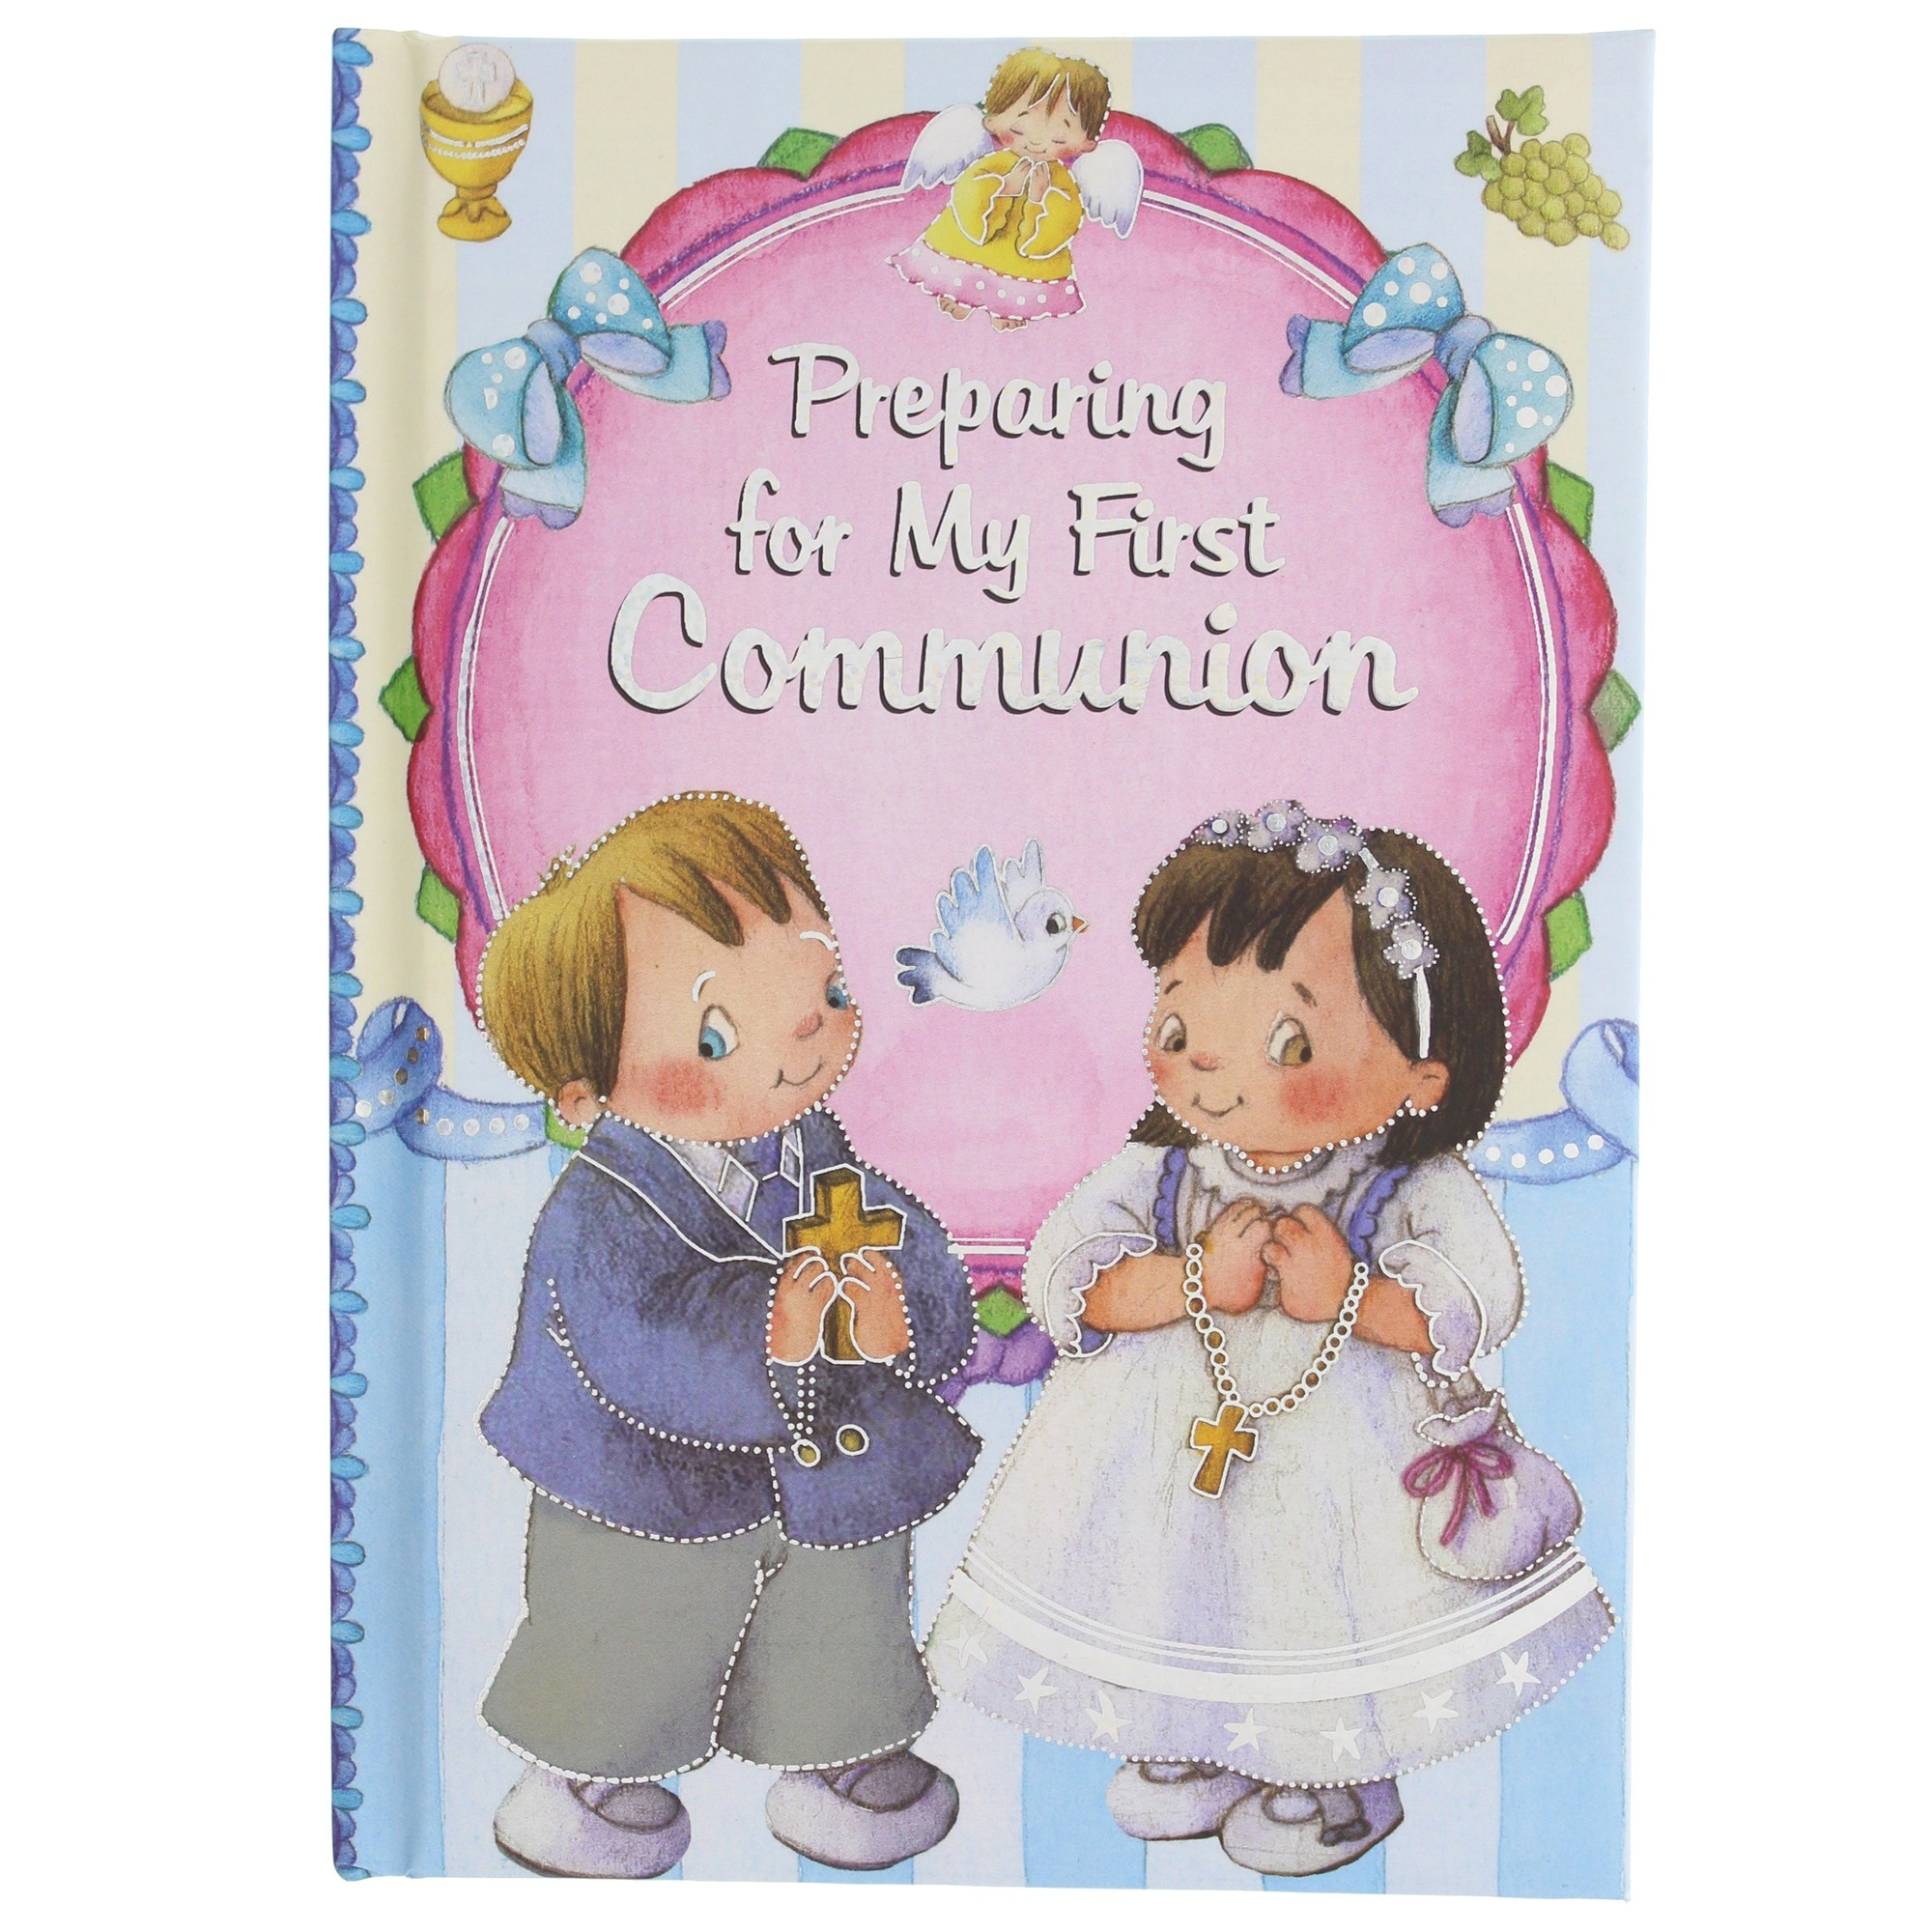 Preparing for My First Communion | The Catholic Company